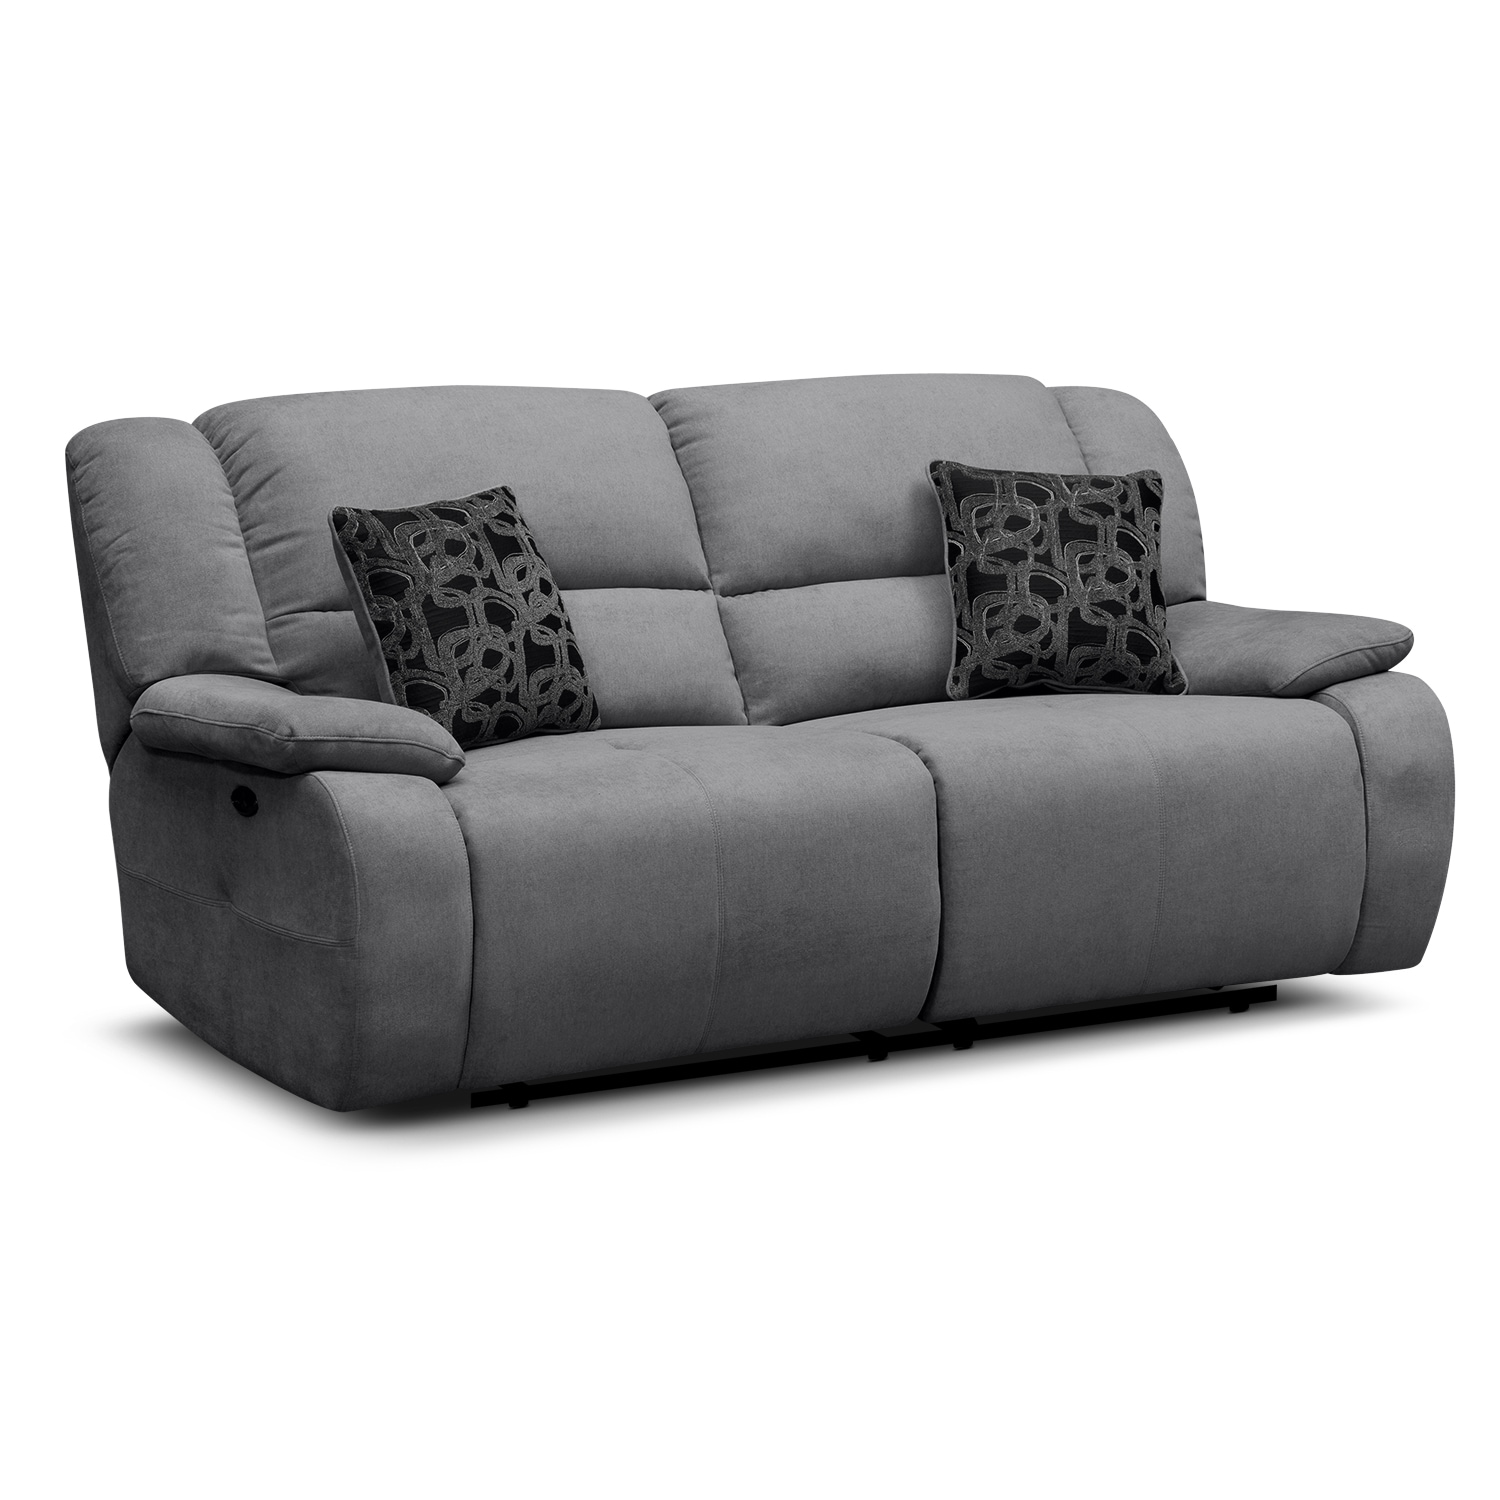 Living Room Furniture - Destin Gray Power Reclining Sofa